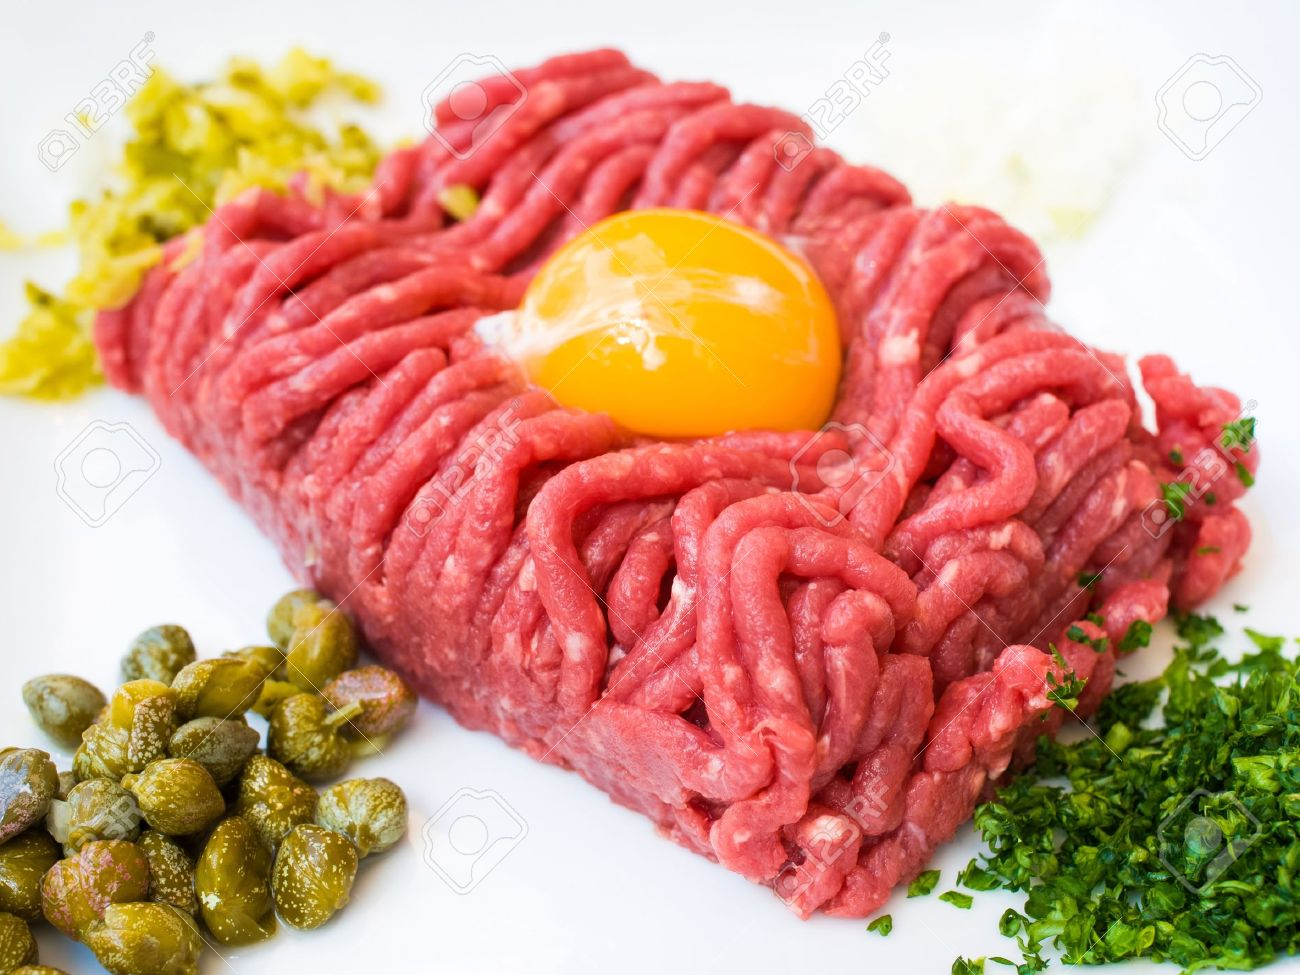 13129001-tasty-tartare-Raw-beef-classic-steak-tartare-on-white-plate-Stock-Photo